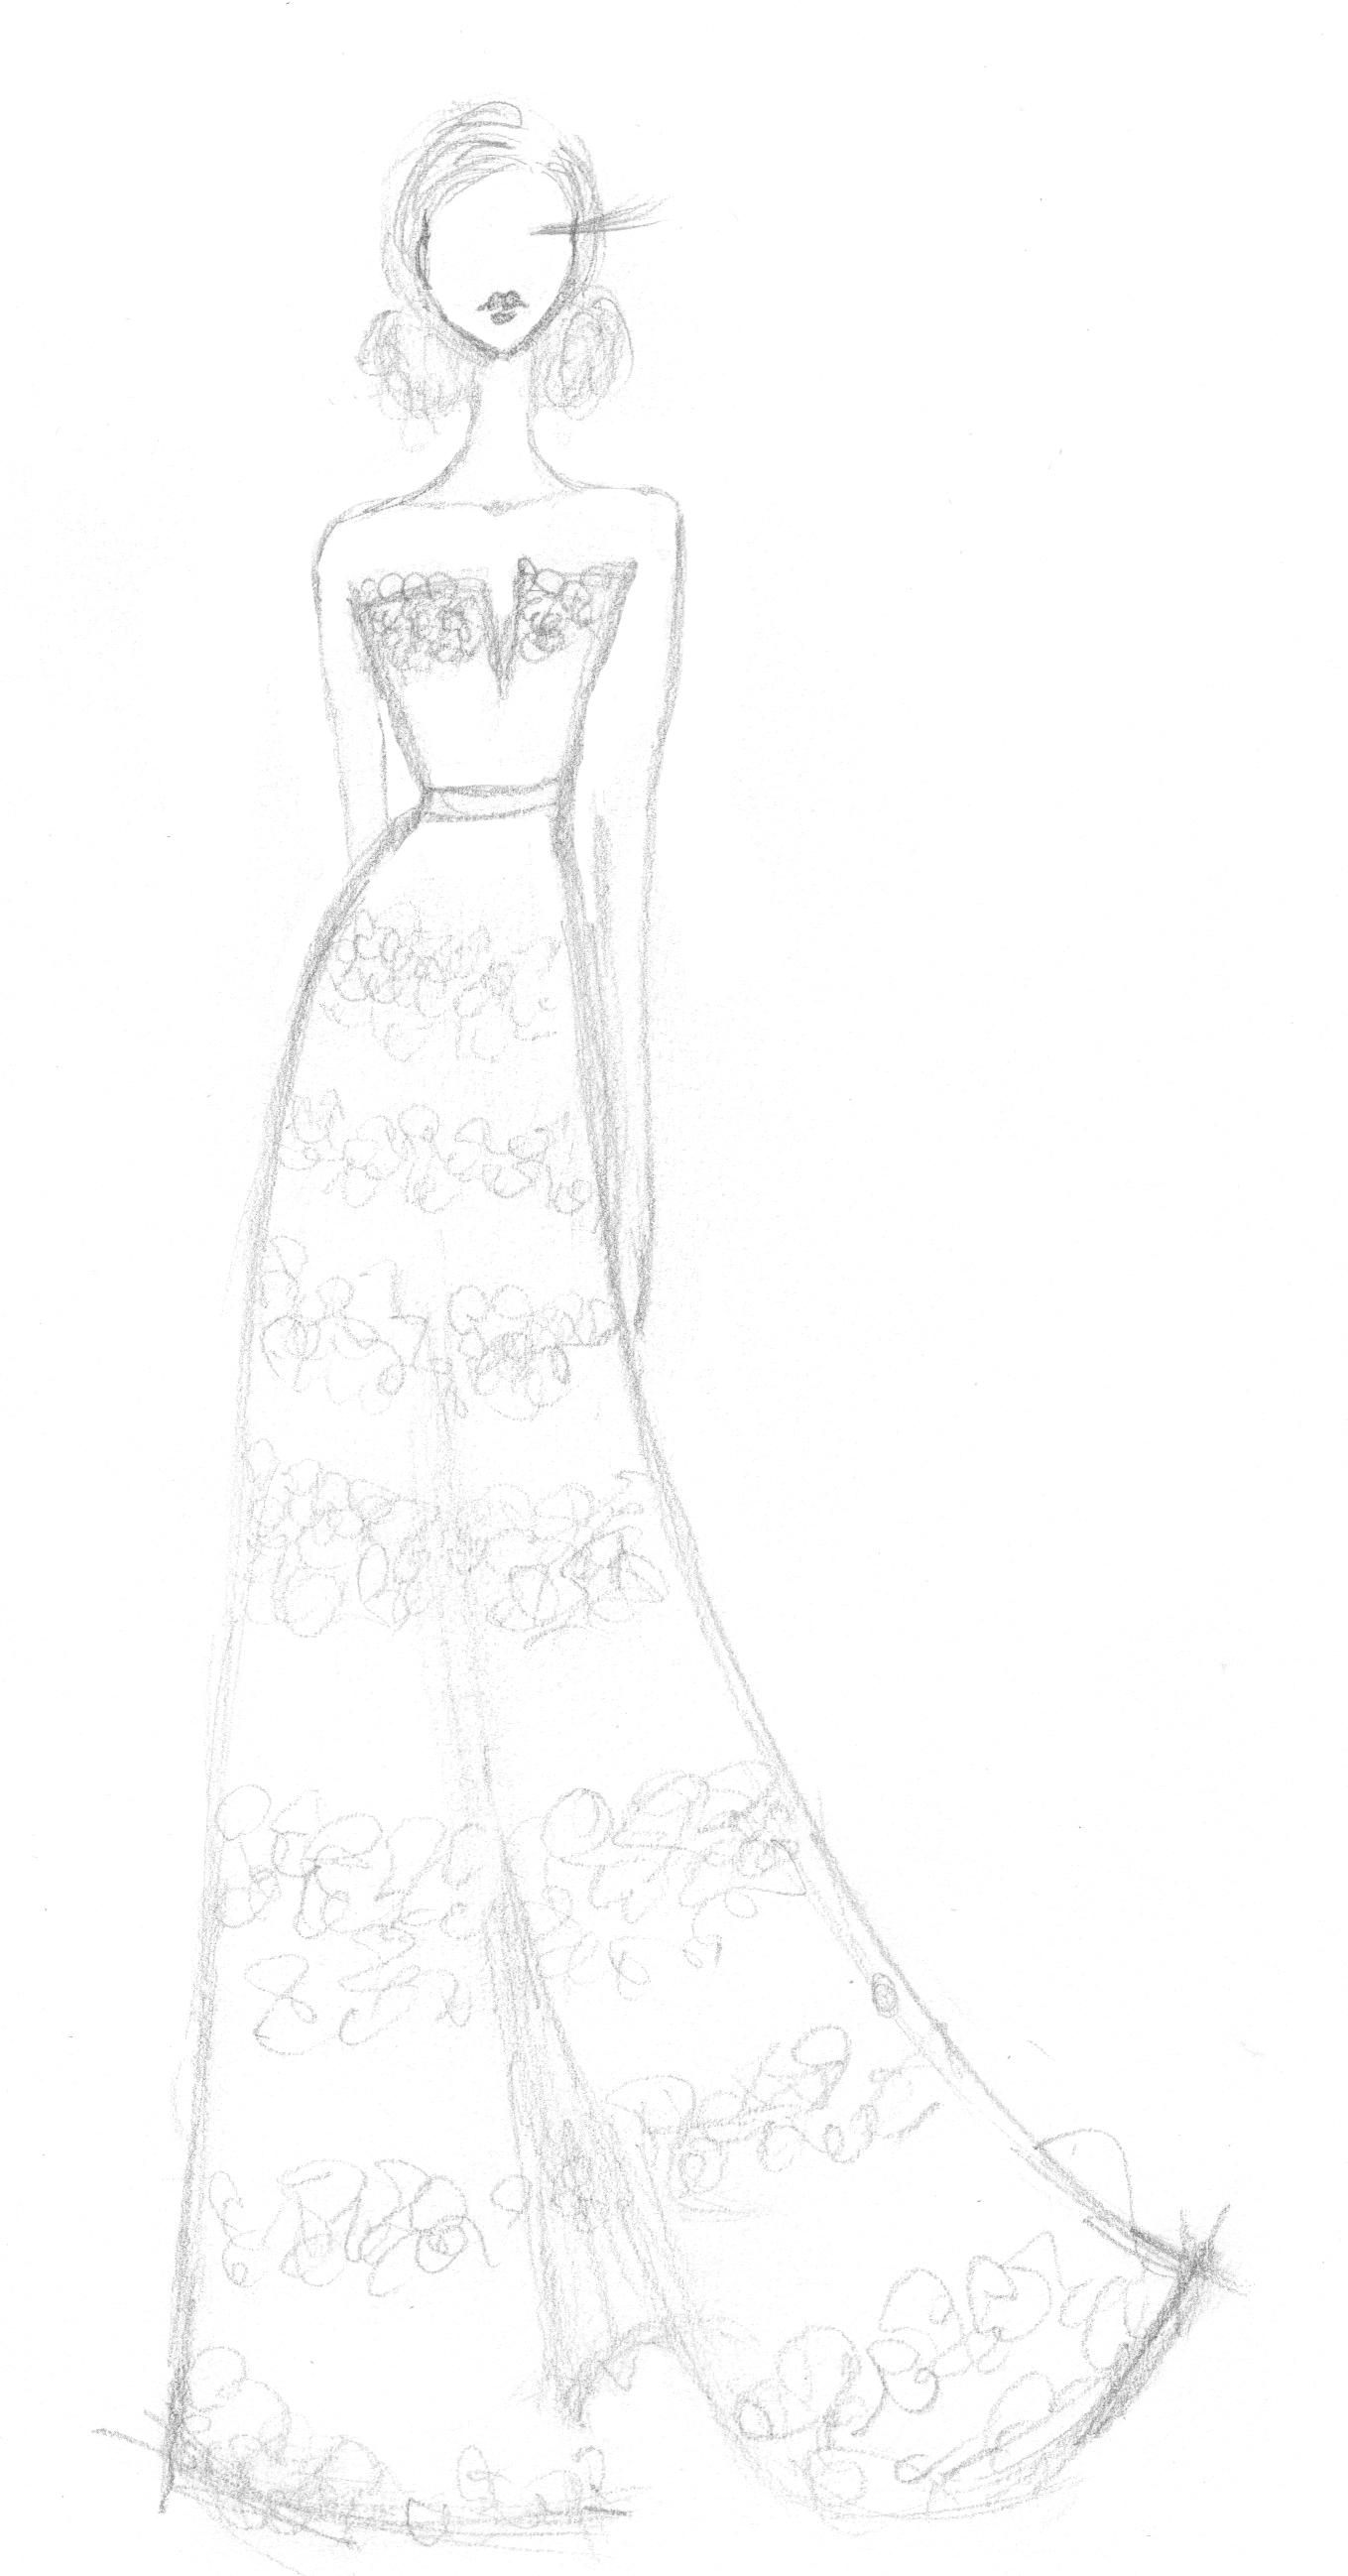 SKETCH ~ Eye on Glamour - image 4 - student project